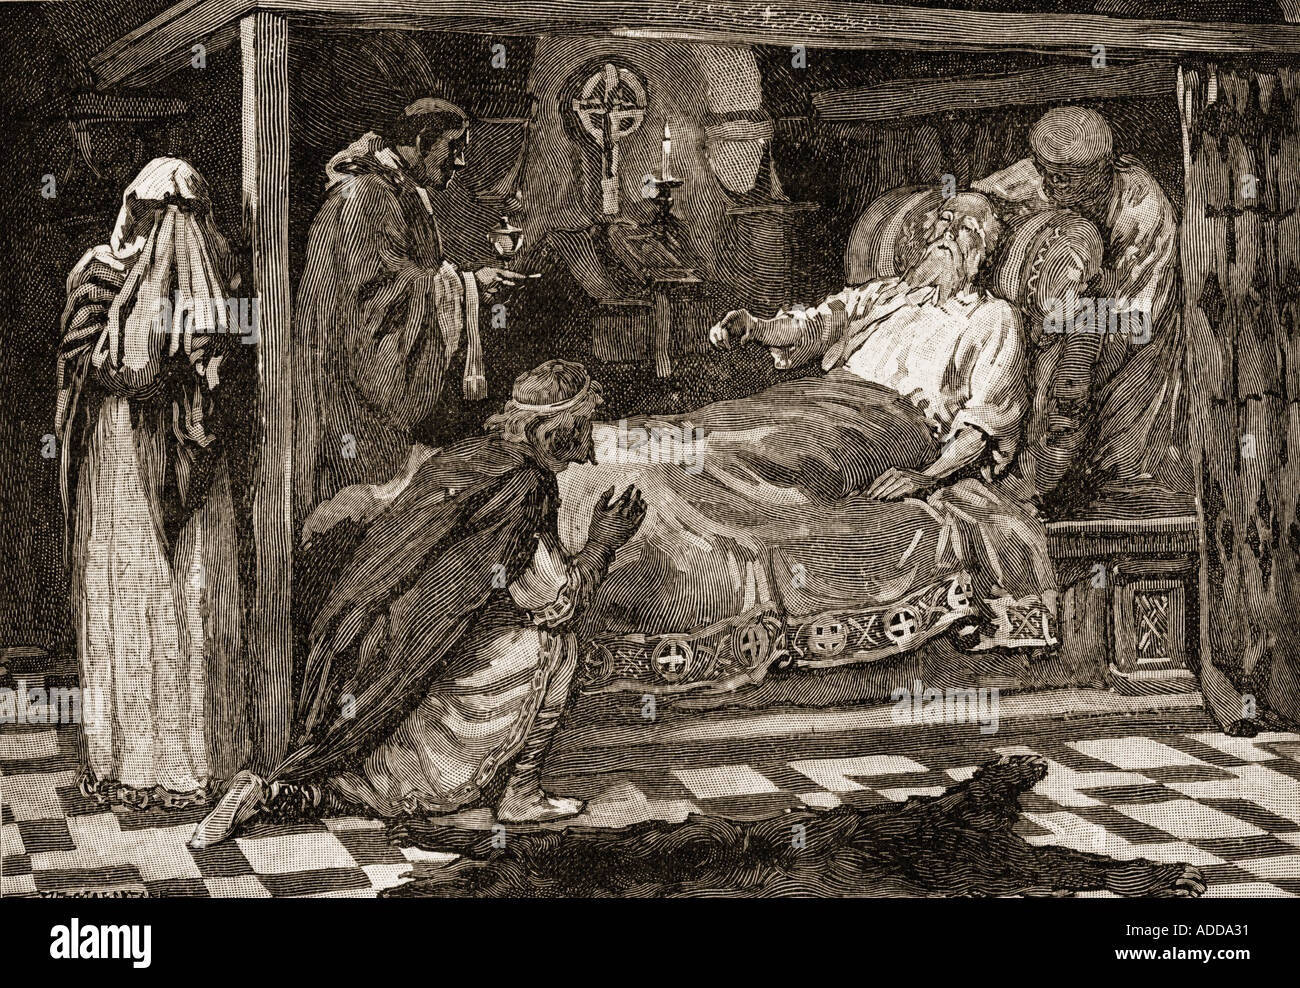 Edward The Confessor, aka Saint Edward the Confessor,1042 -1066. Penultimate Anglo Saxon King.  Seen here on his deathbed. - Stock Image